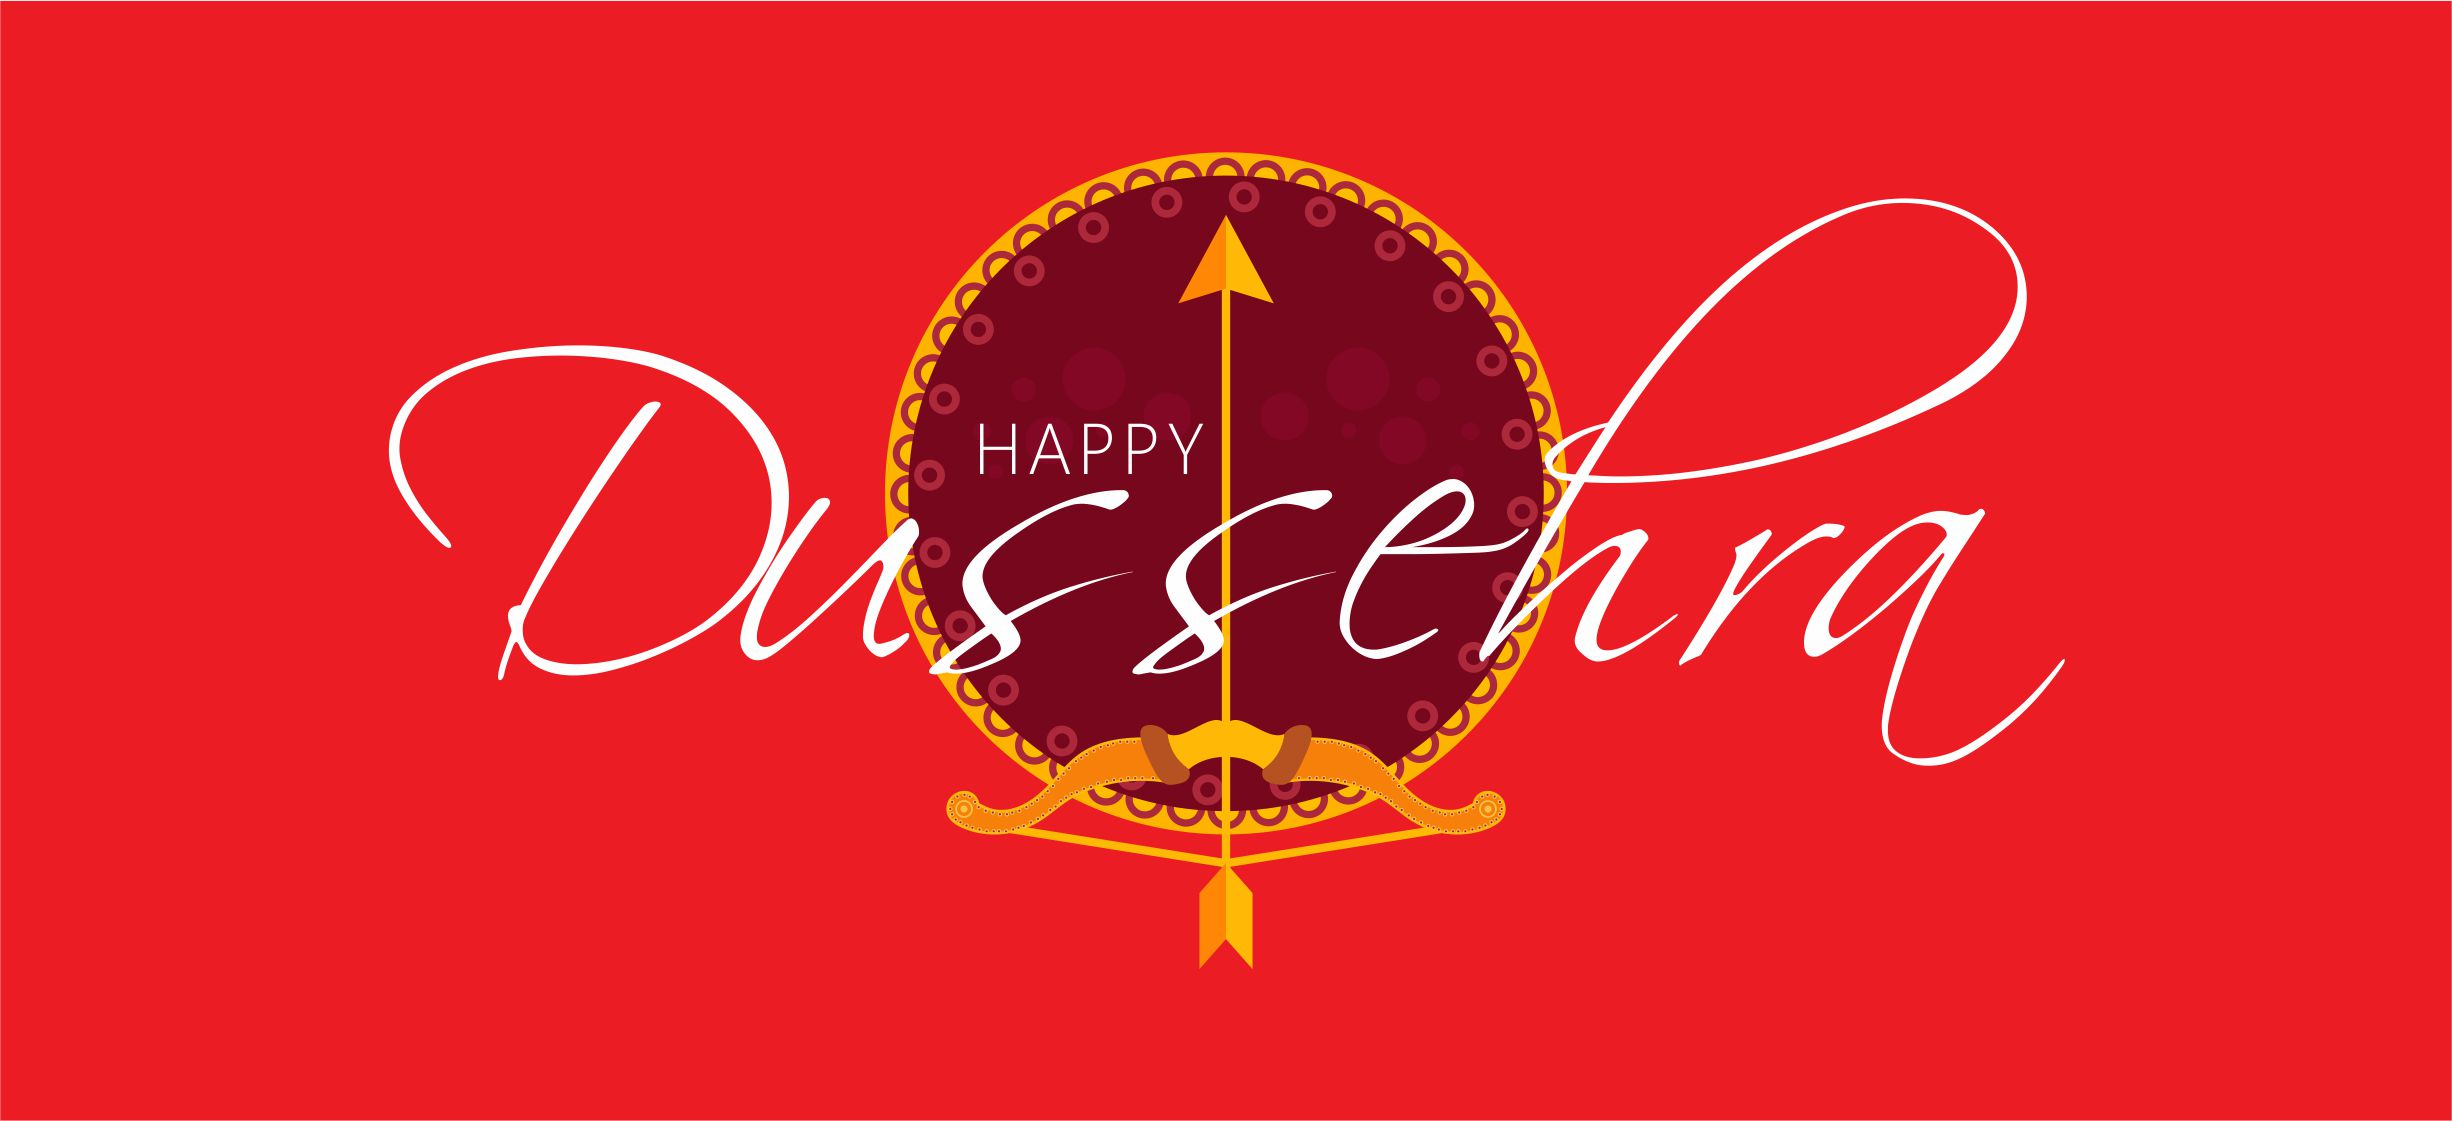 Alma Today Wishes You a Happy Dussehra